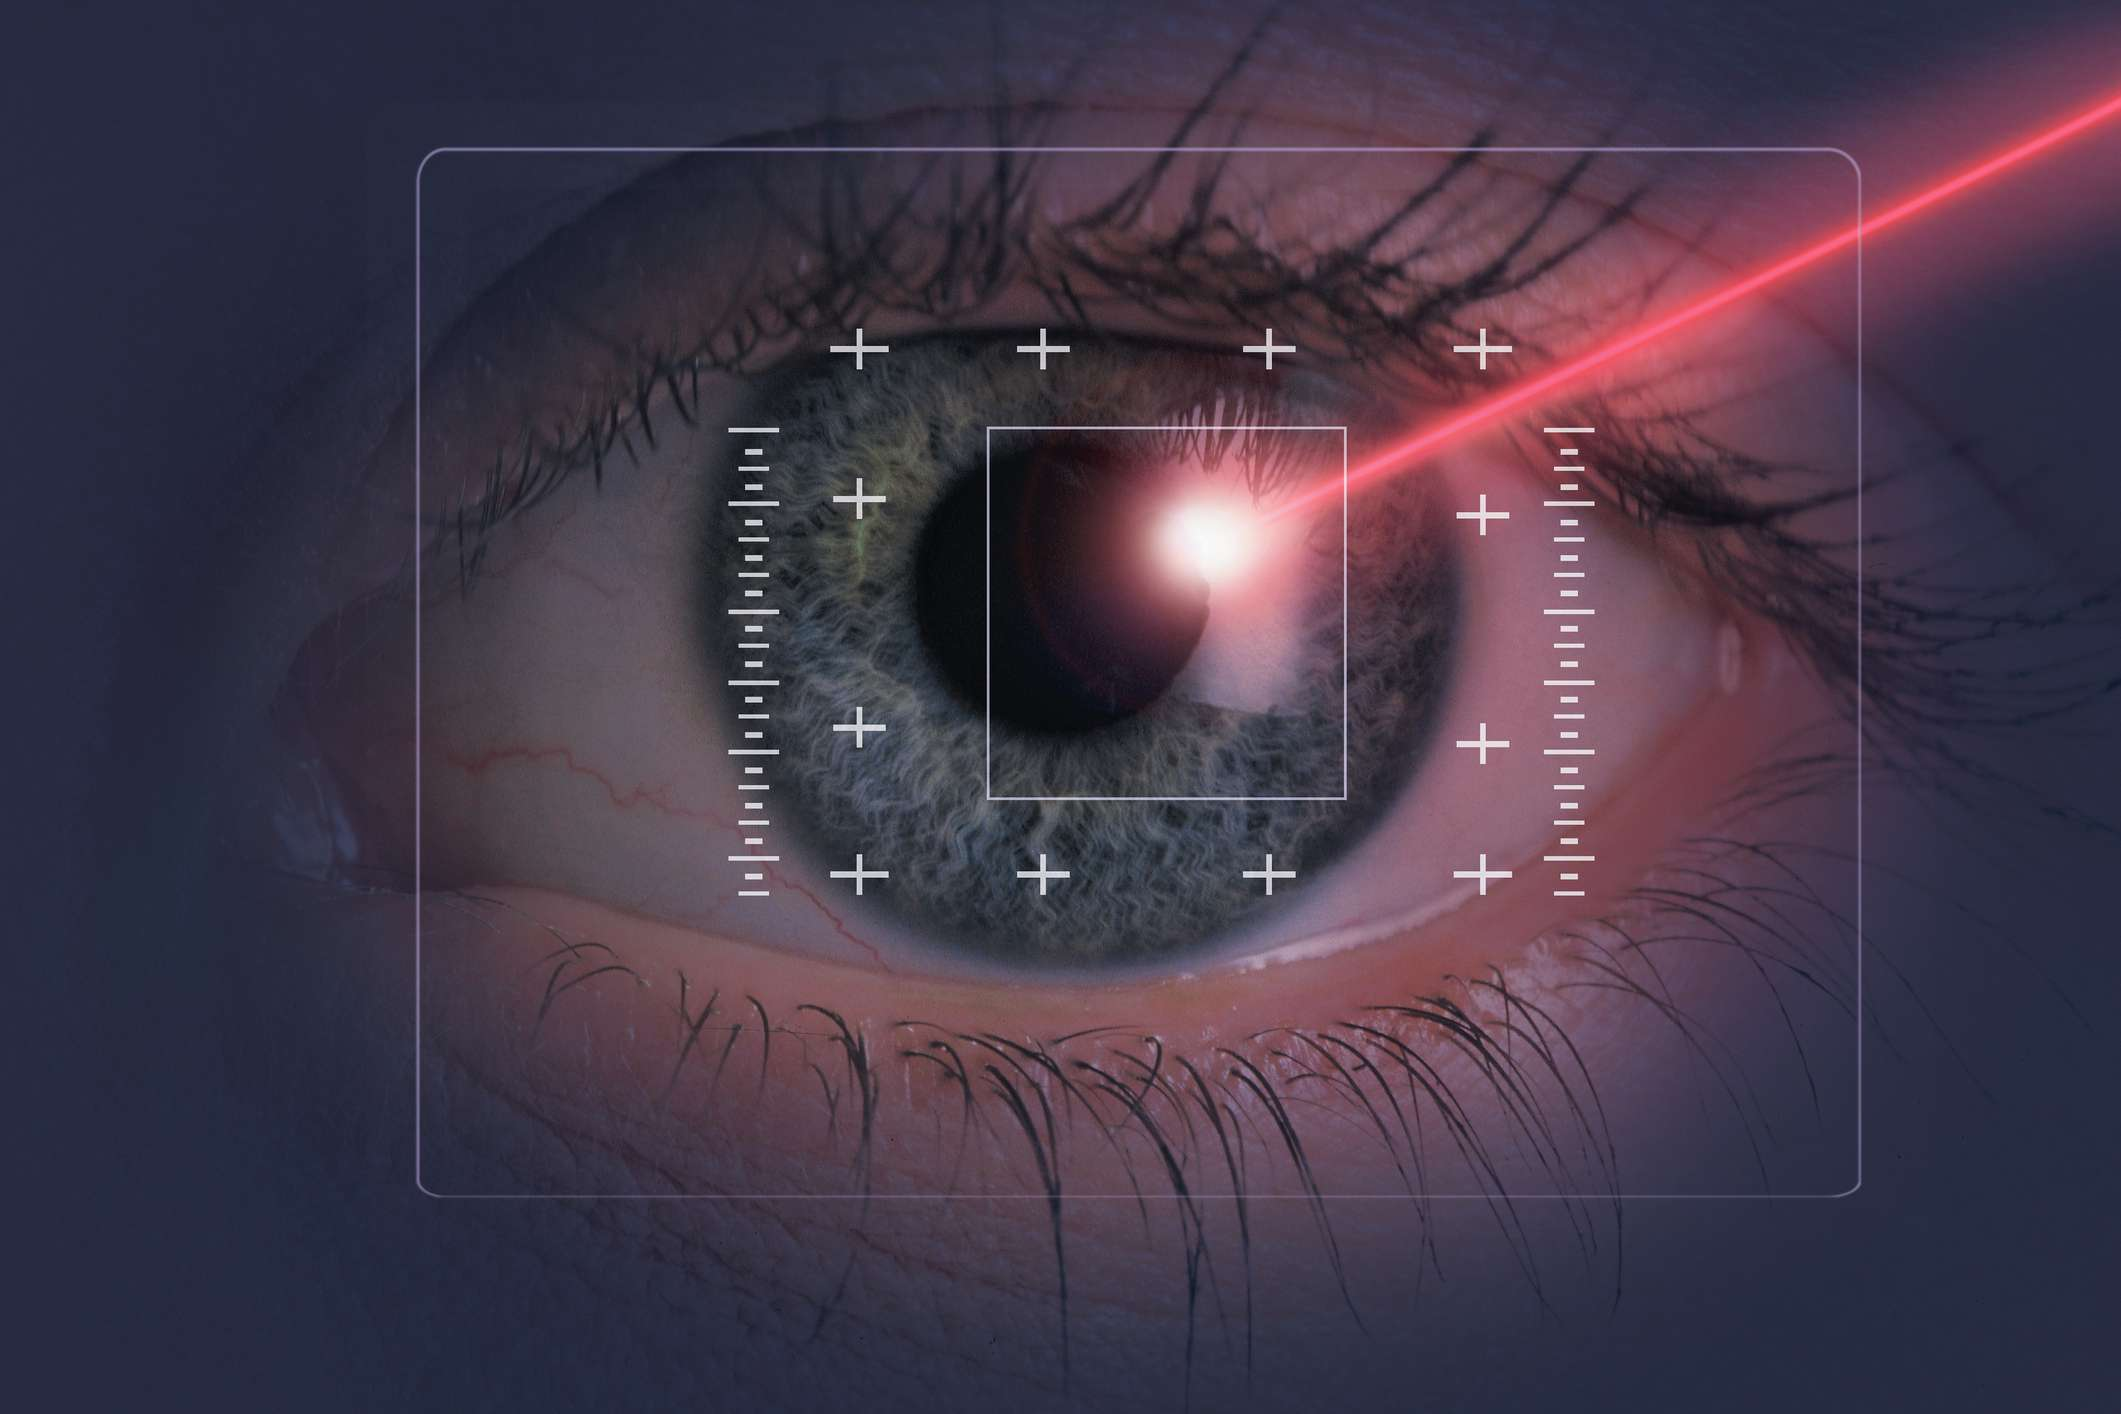 Eye with a beam of light aimed at the surface